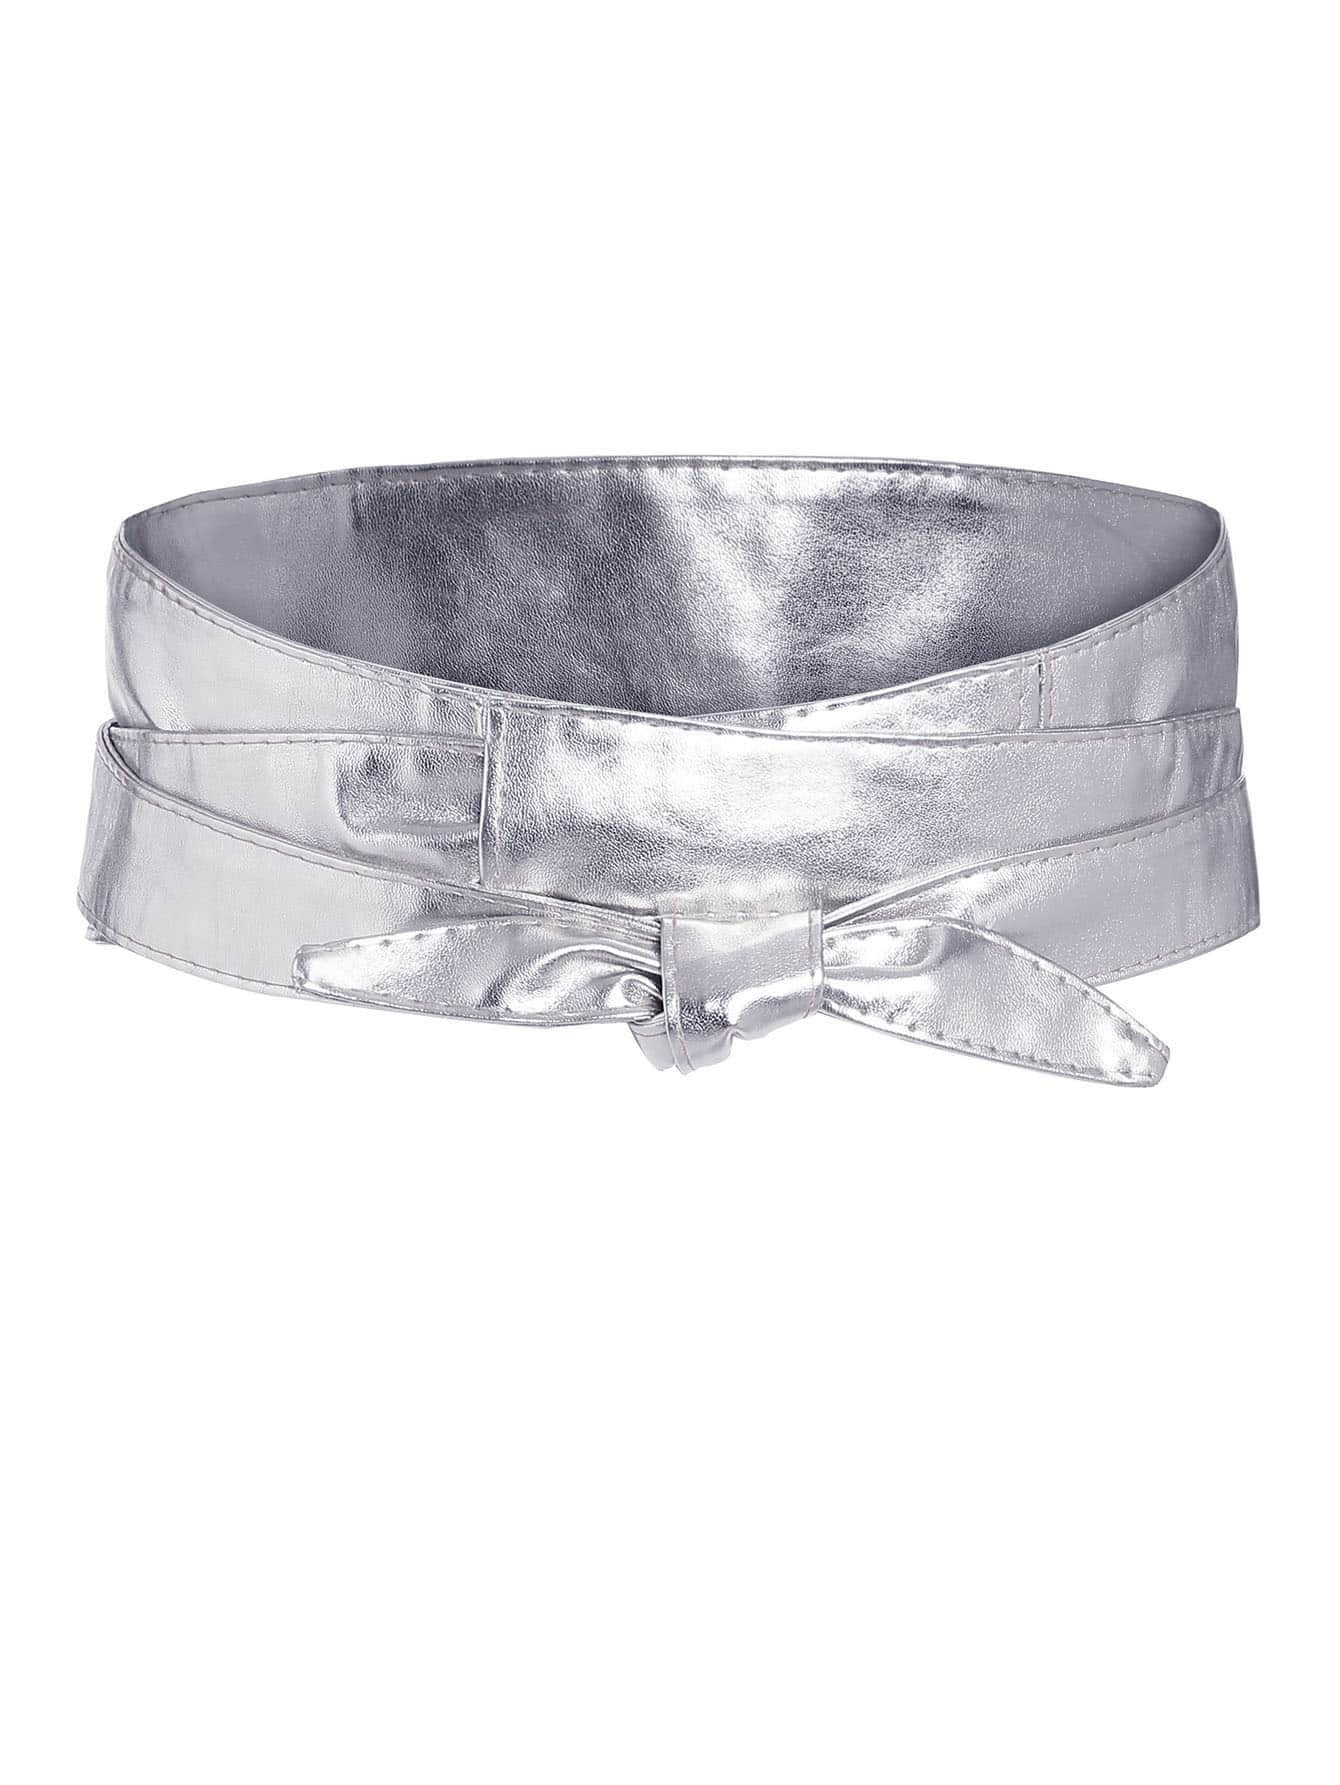 Looking for a new Silver Glitter belt? Check out Zazzle's amazing selection in a number of different styles & colors. Shop our collection today!